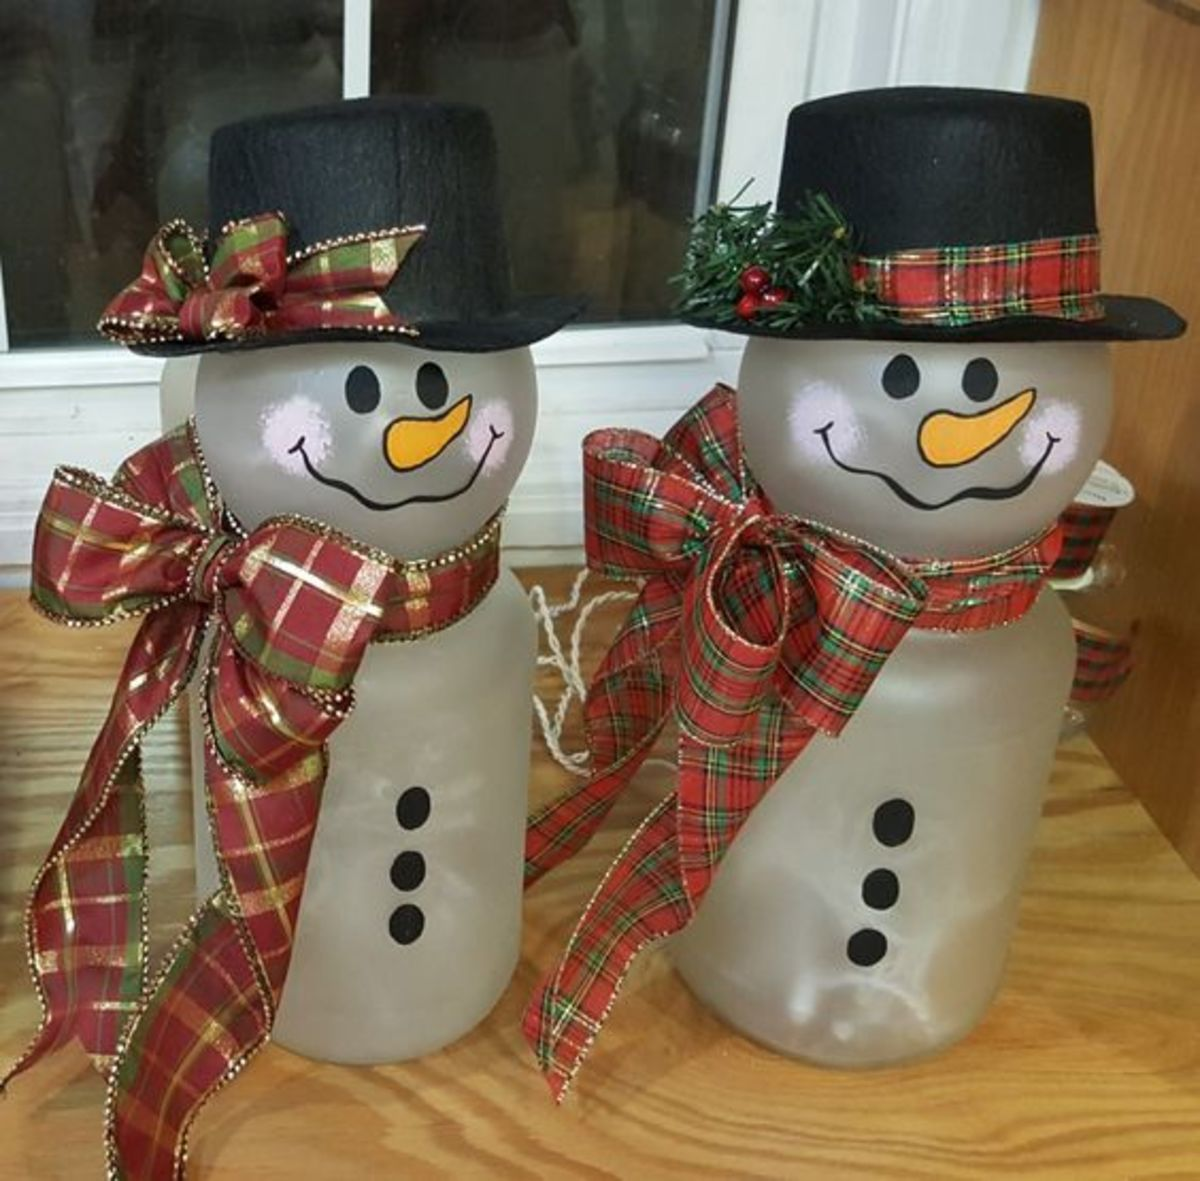 Pickle Jar Snowman Christmas Crafts Hubpages